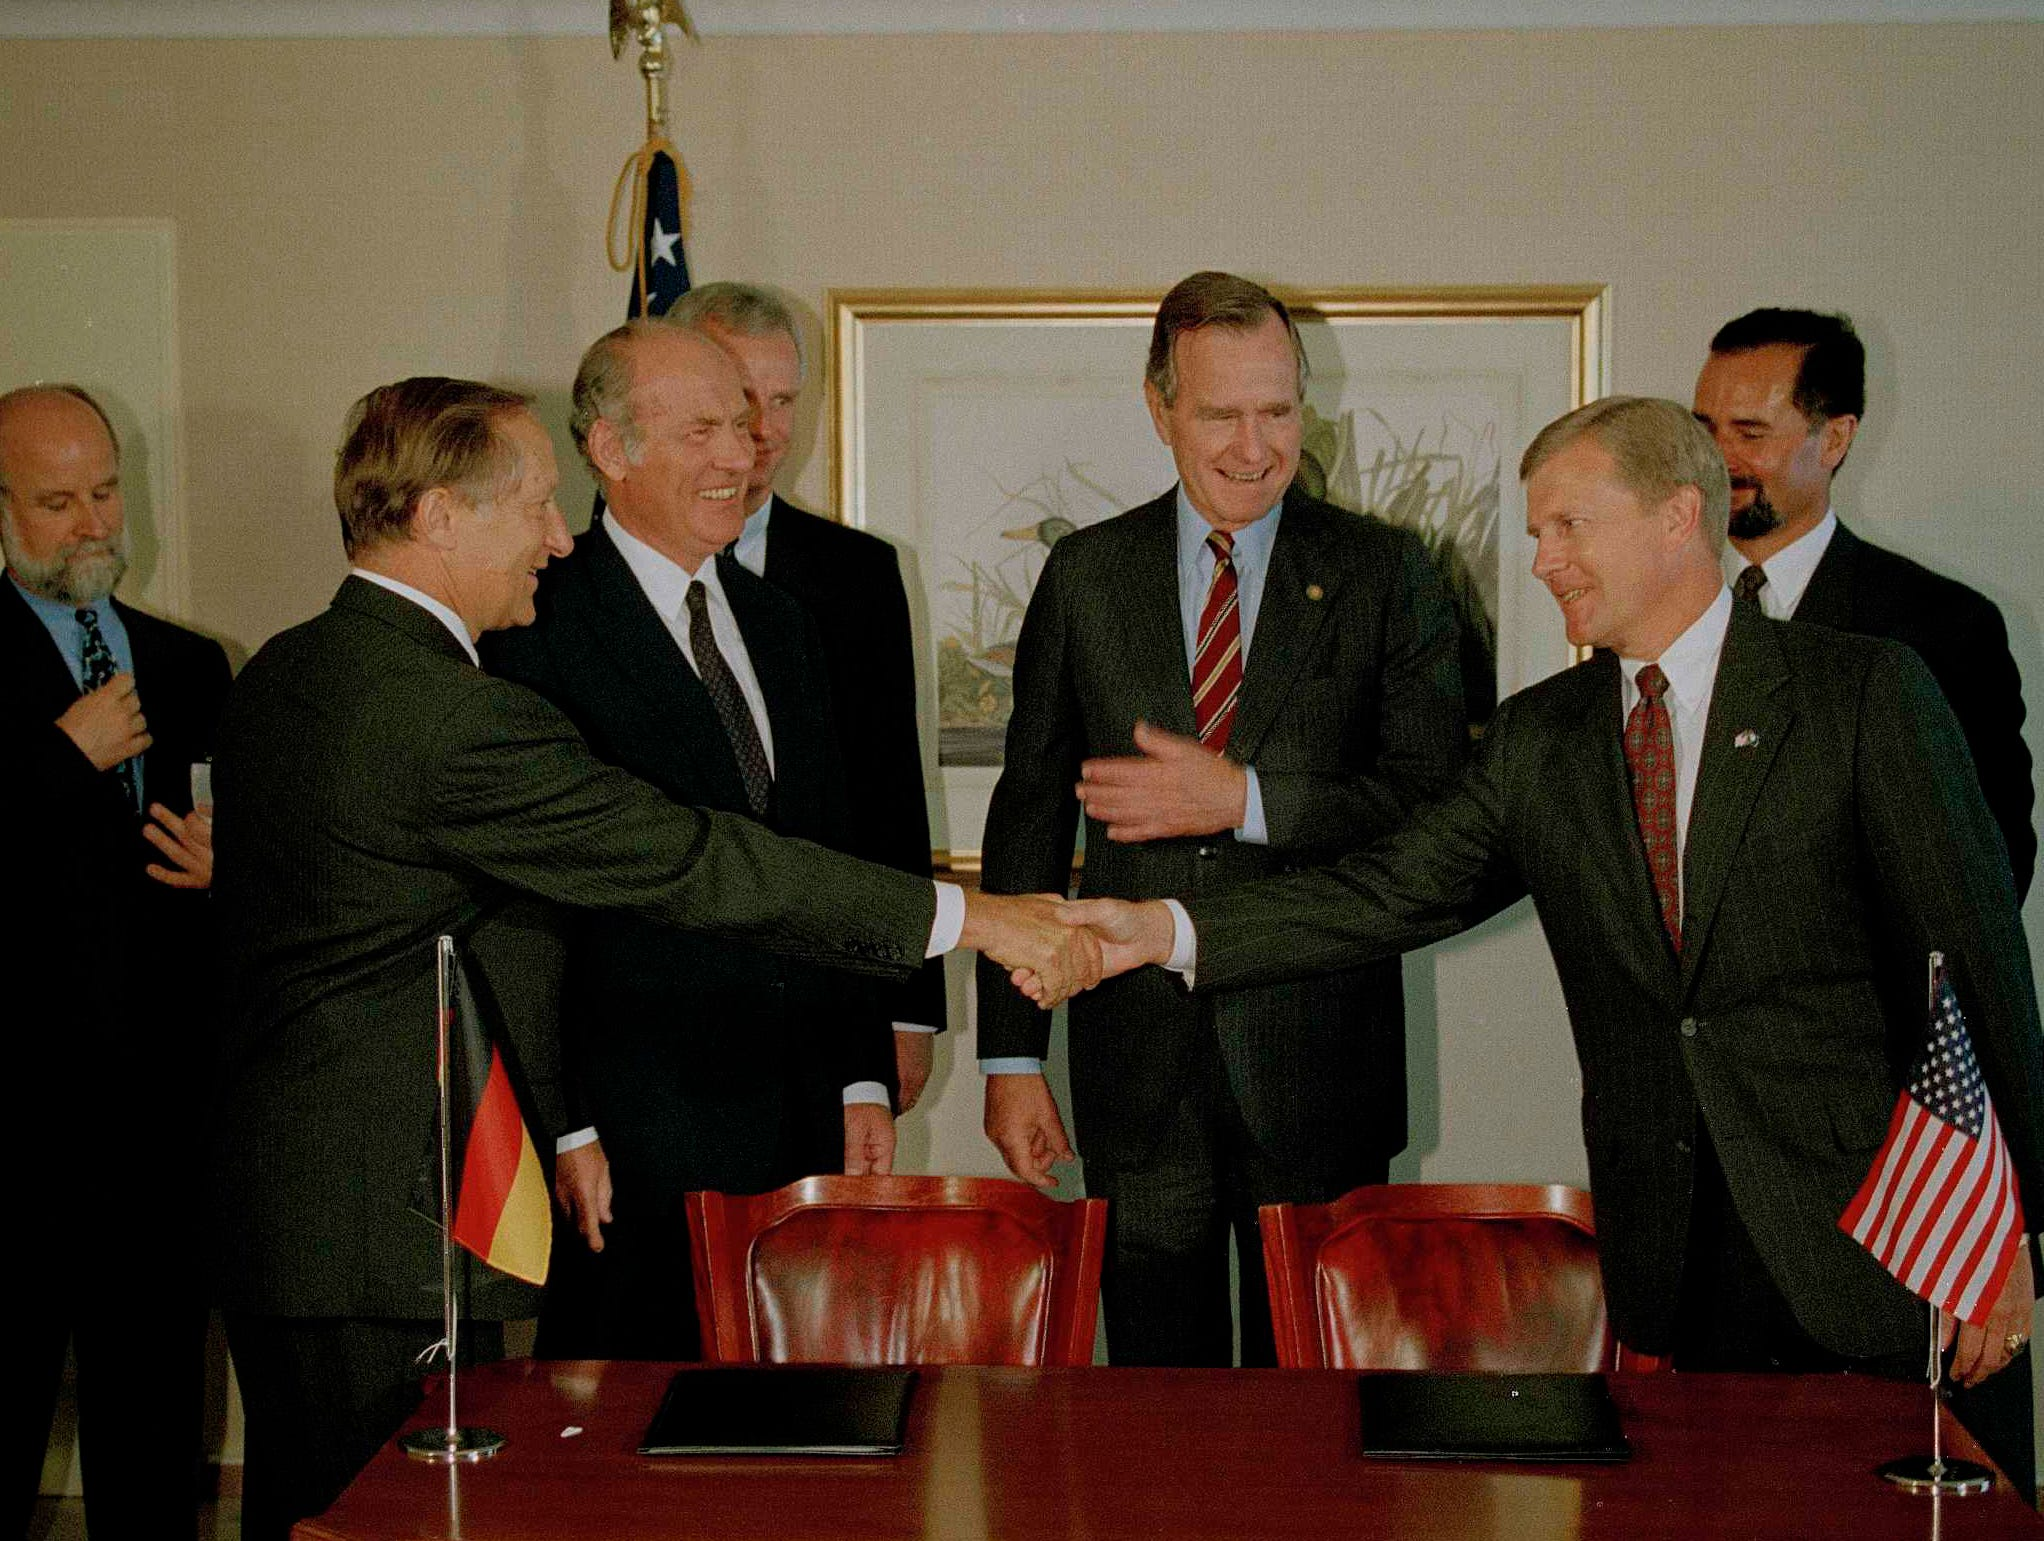 South Carolina Gov. Carroll Campbell, left, shakes hands with BMW chairman Eberhard von Kuenheim, right, as President George Bush looks on at center at Munich's Sheraton Hotel, July 6, 1992. The governor and von Kuenheim signed a treaty for BMW to build a factory for automobiles in Spartanburg, S.C. (AP Photo/Doug Mills)